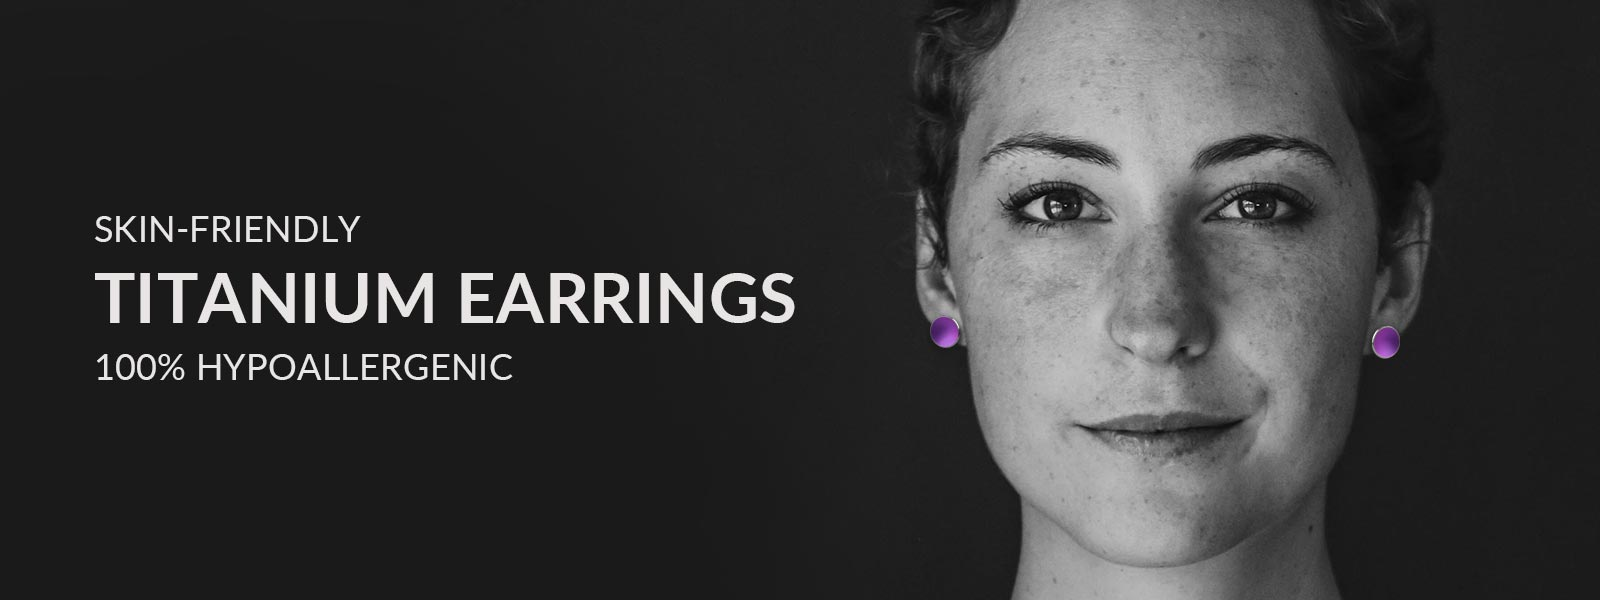 Beautiful girl wearing hypoallergenic titanium earrings